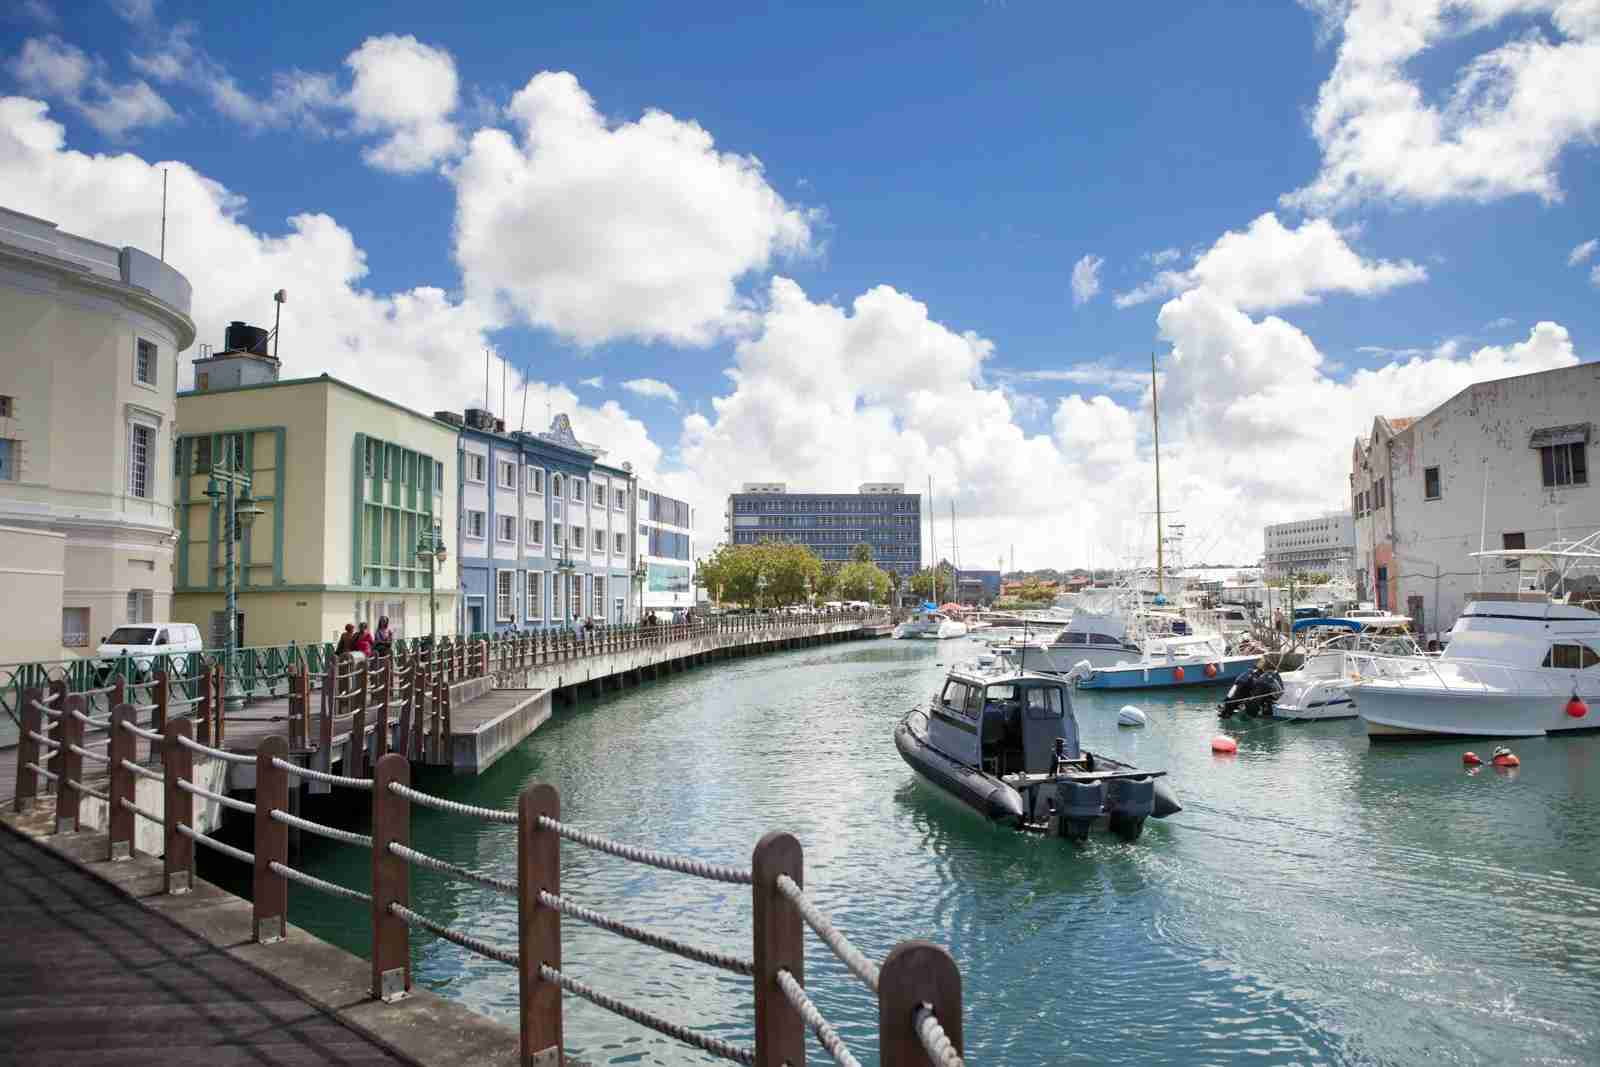 The marina in downtown Bridgetown, Barbados. (Photo via Shutterstock)